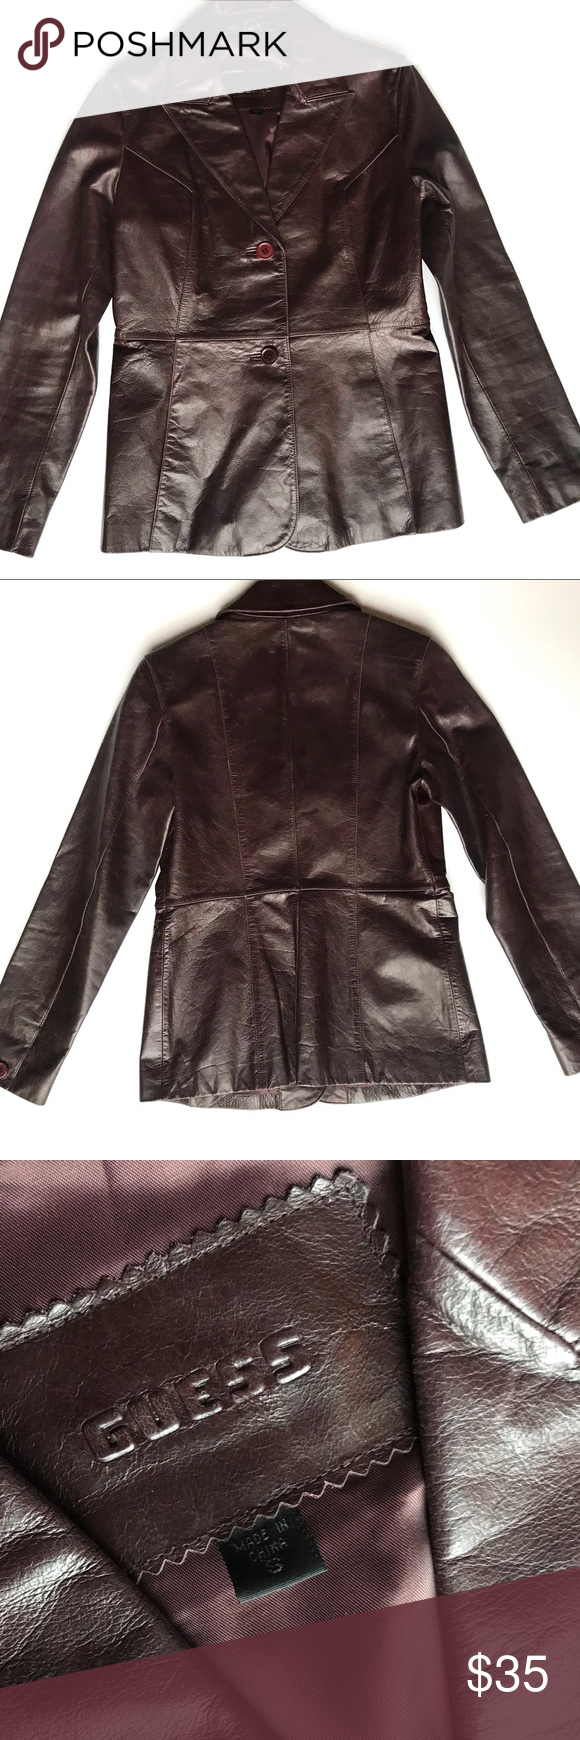 Guess Dark Brown Genuine Leather Jacket Small Leather Jacket Genuine Leather Jackets Jackets [ 1740 x 580 Pixel ]